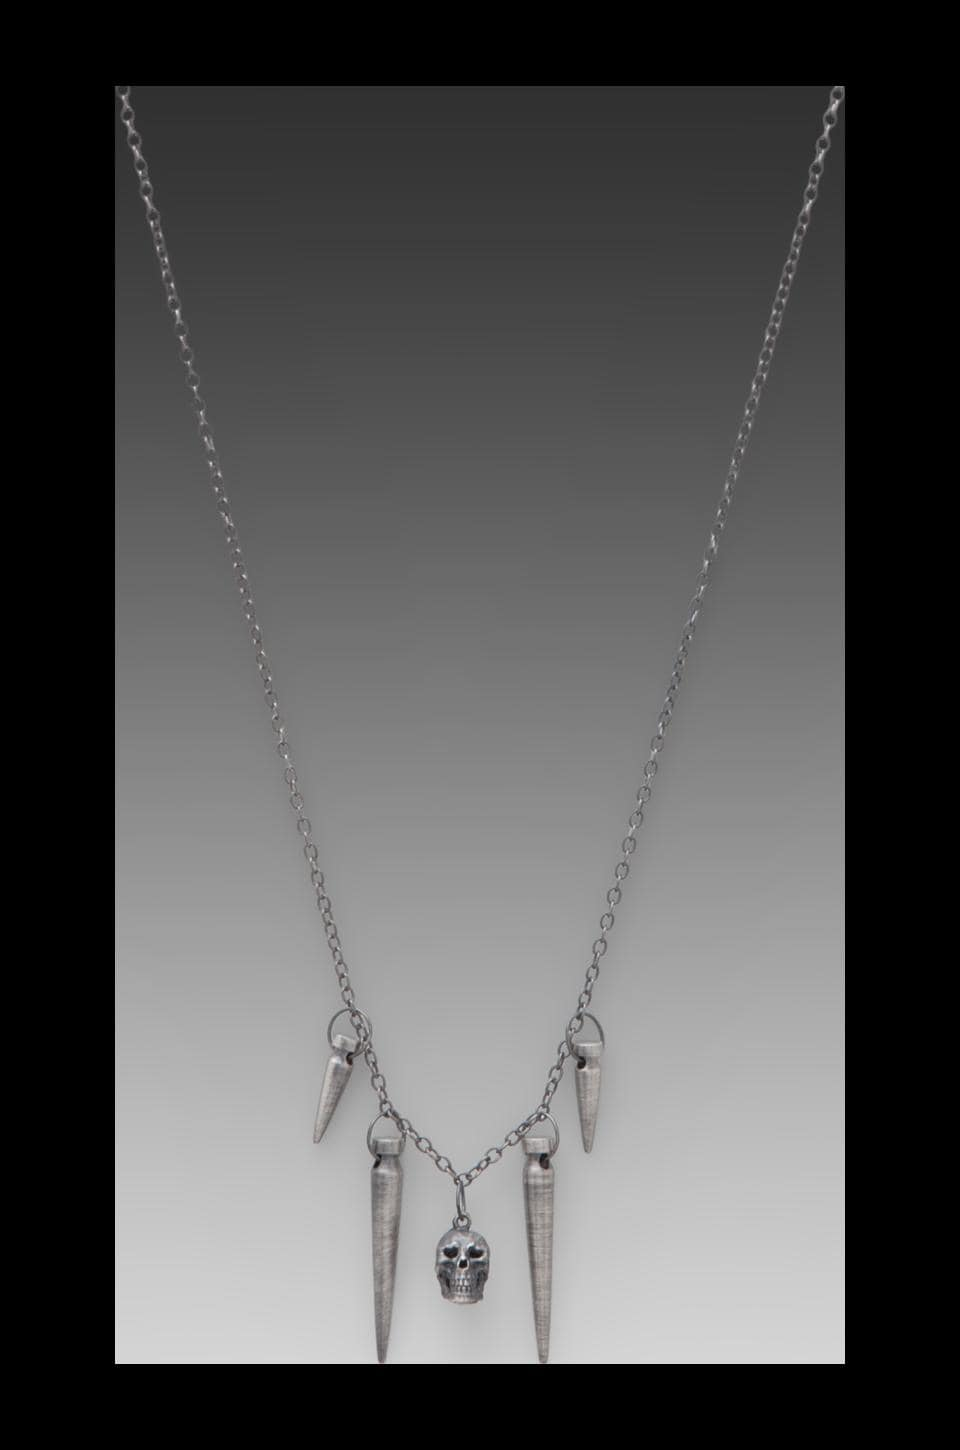 Obey Slay Necklace in Silver Oxidize